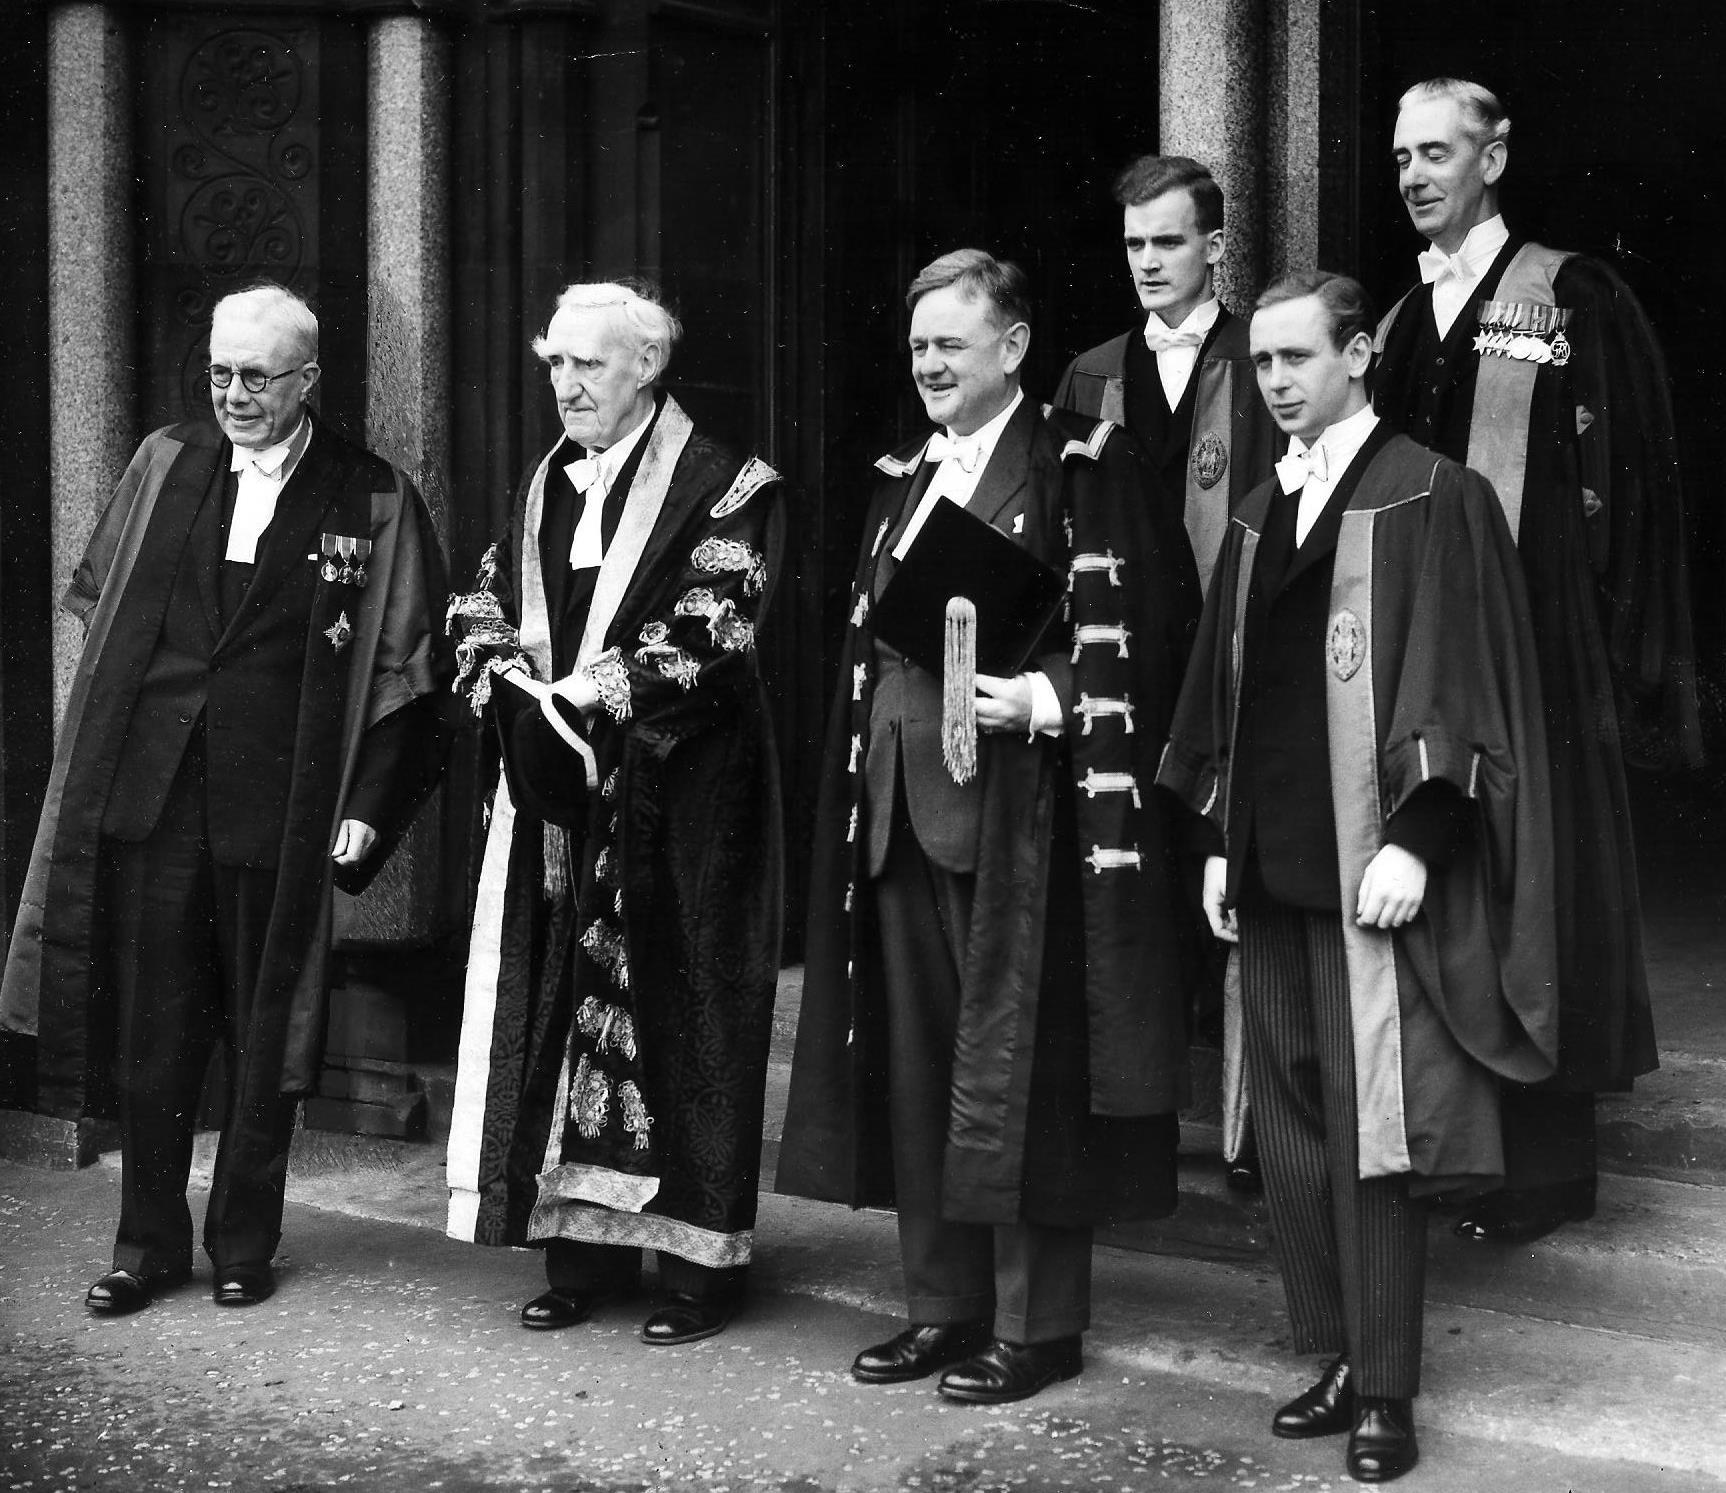 THOSE WERE THE DAYS: 1960: Tight security for Hailsham's installation as rector at Glasgow University